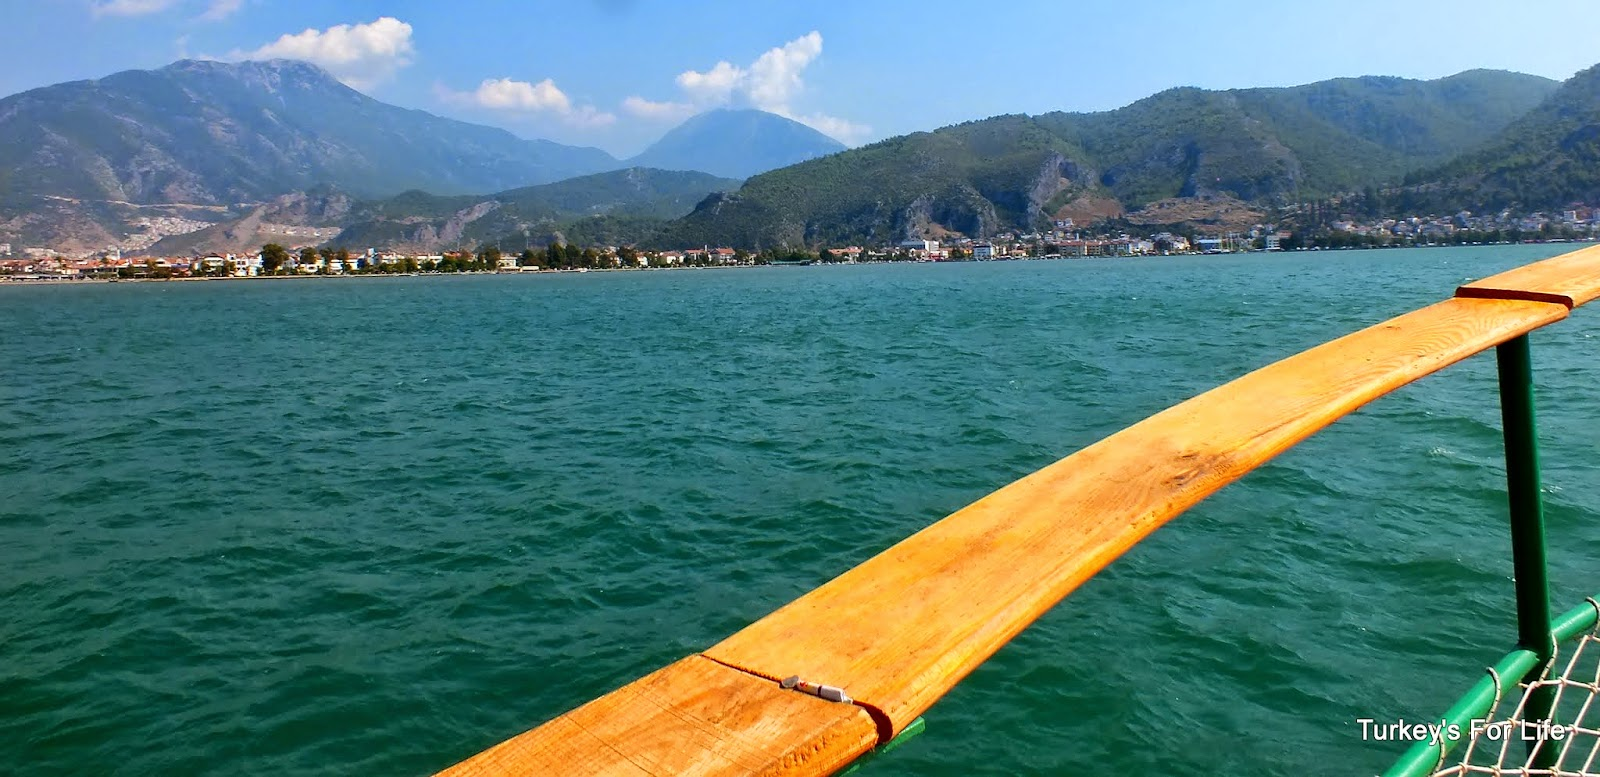 Fethiye Bay, Turkey - By Water Taxi From Çalış